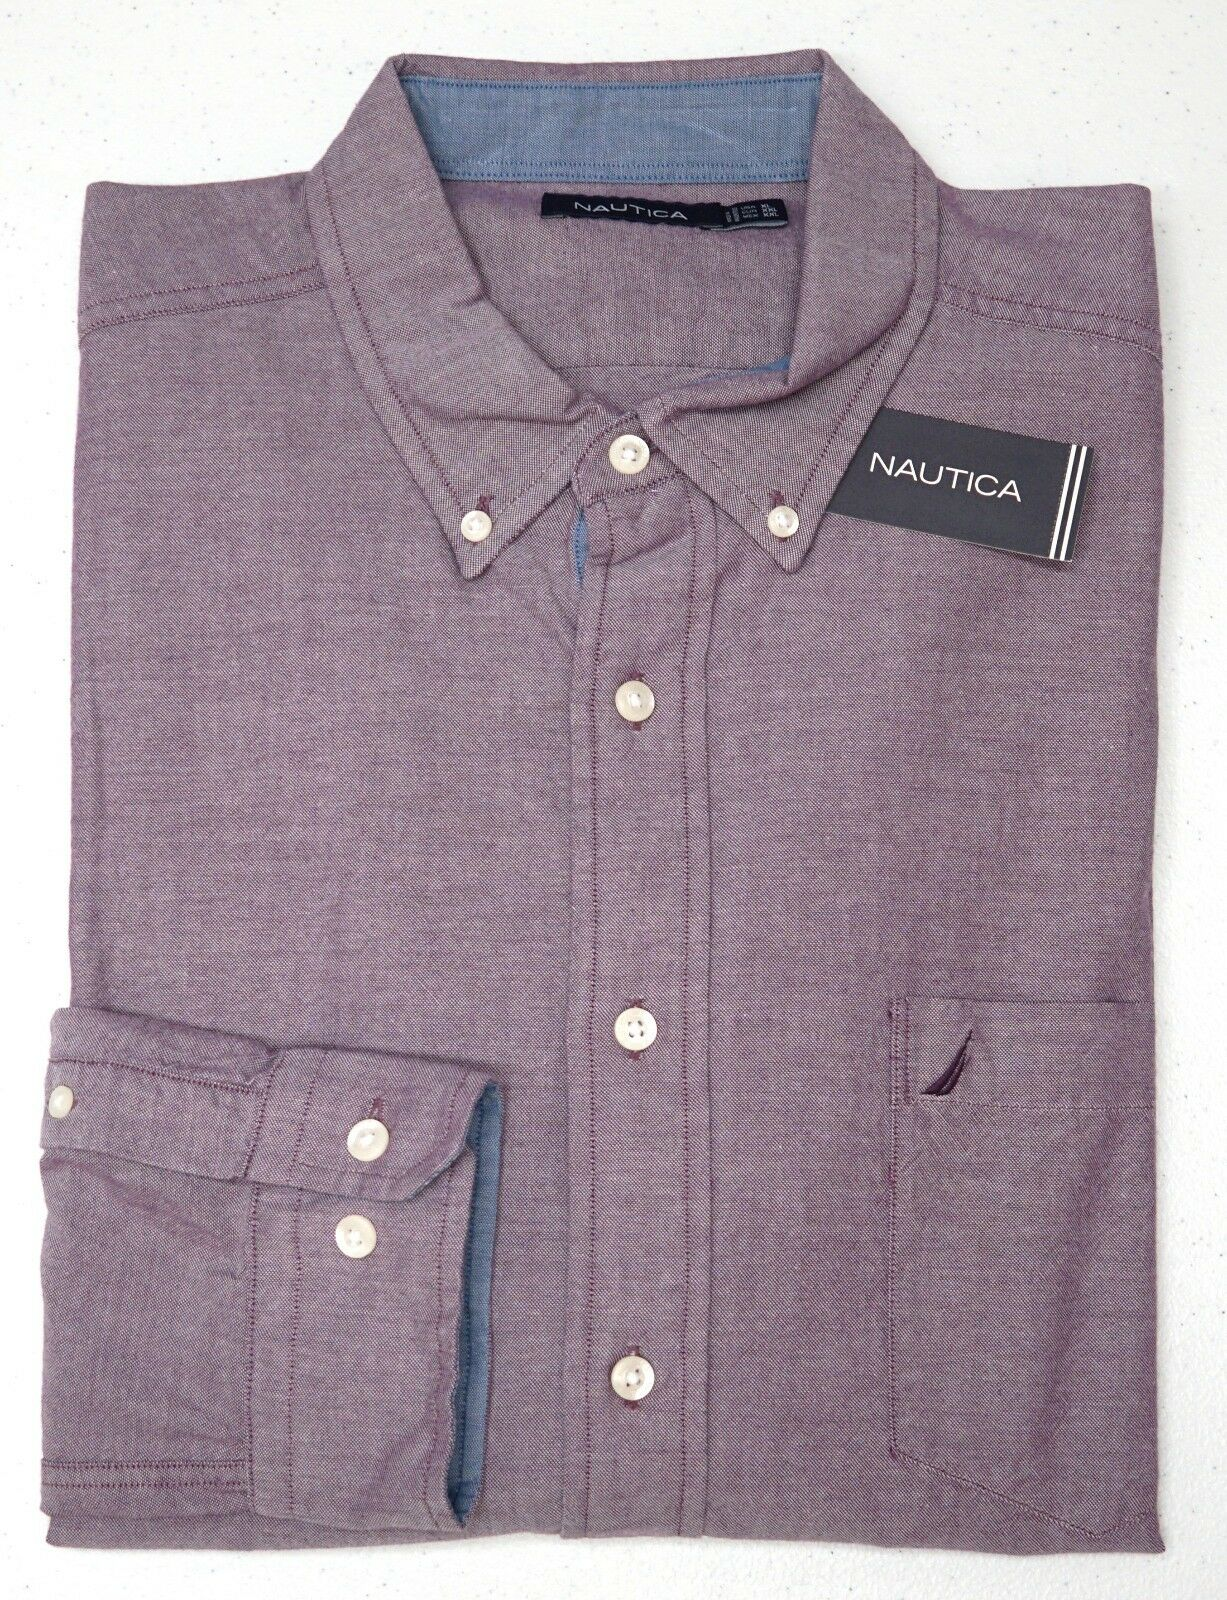 Orig  Nautica Purple Long Sleeve Shirt Mens Size XL 100% Cotton Heather NEW